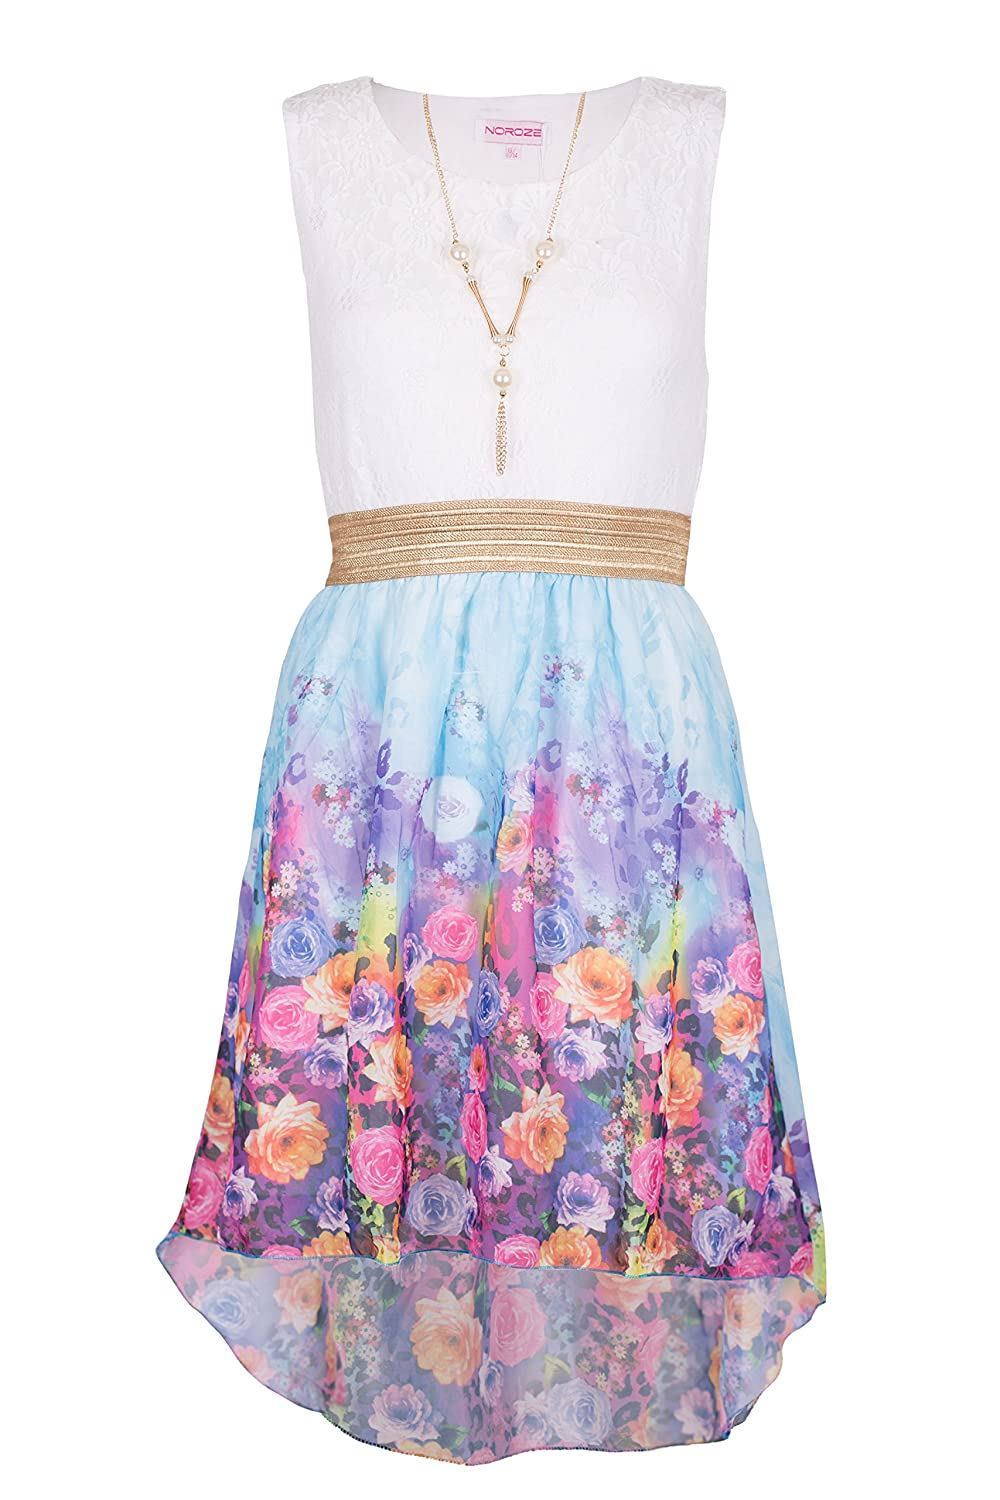 Girls Kids Summer Party Sleeveless Lace Top Floral High Low Dress 3 - 13 Years